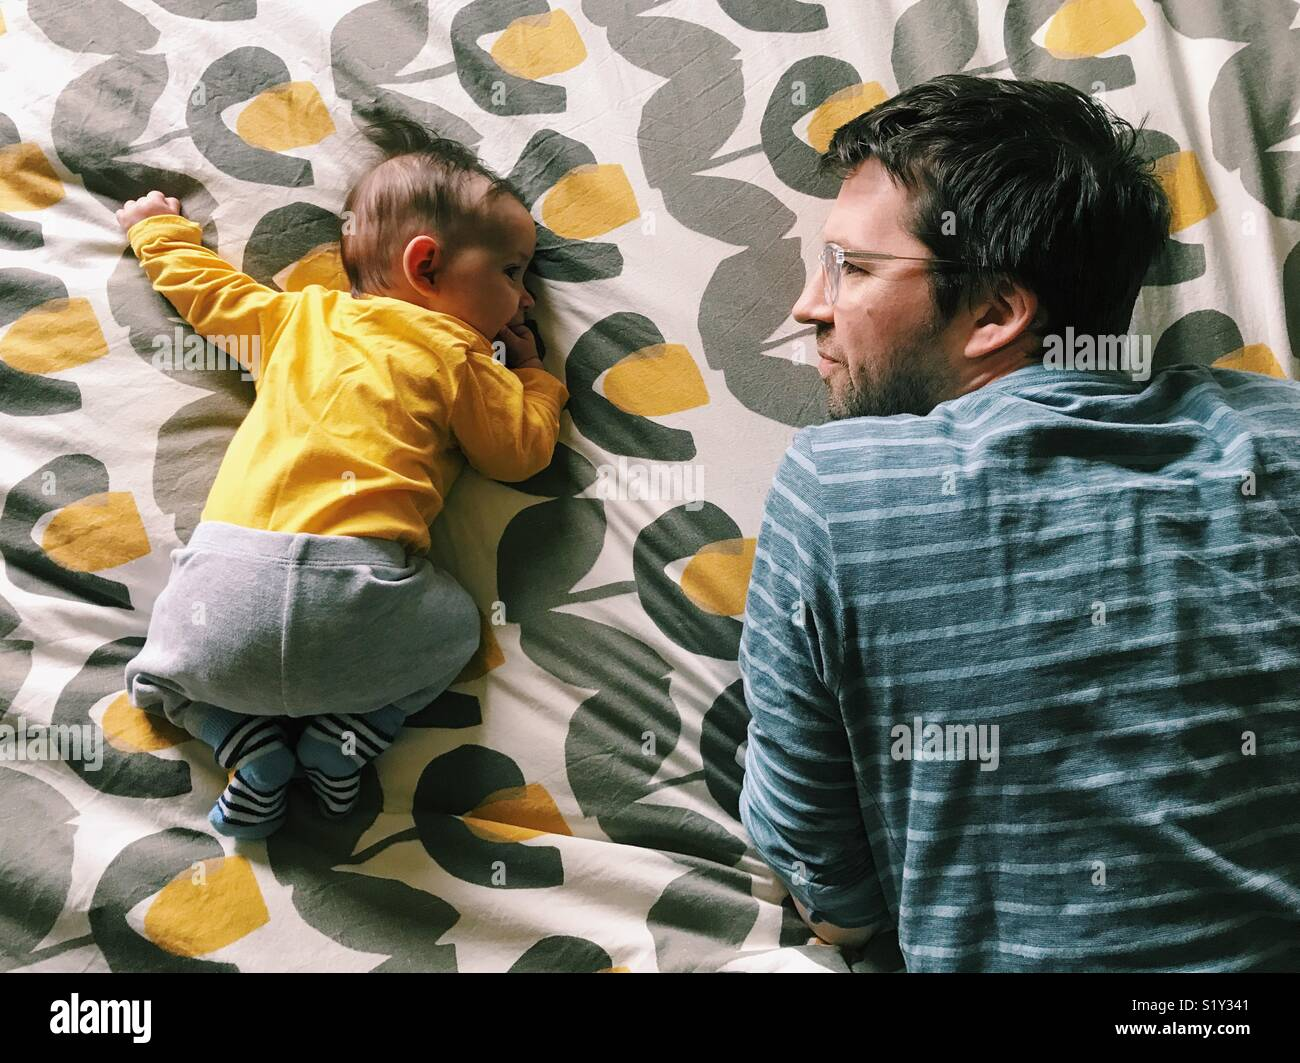 Tummy time for a baby girl with her father watching beside her. - Stock Image